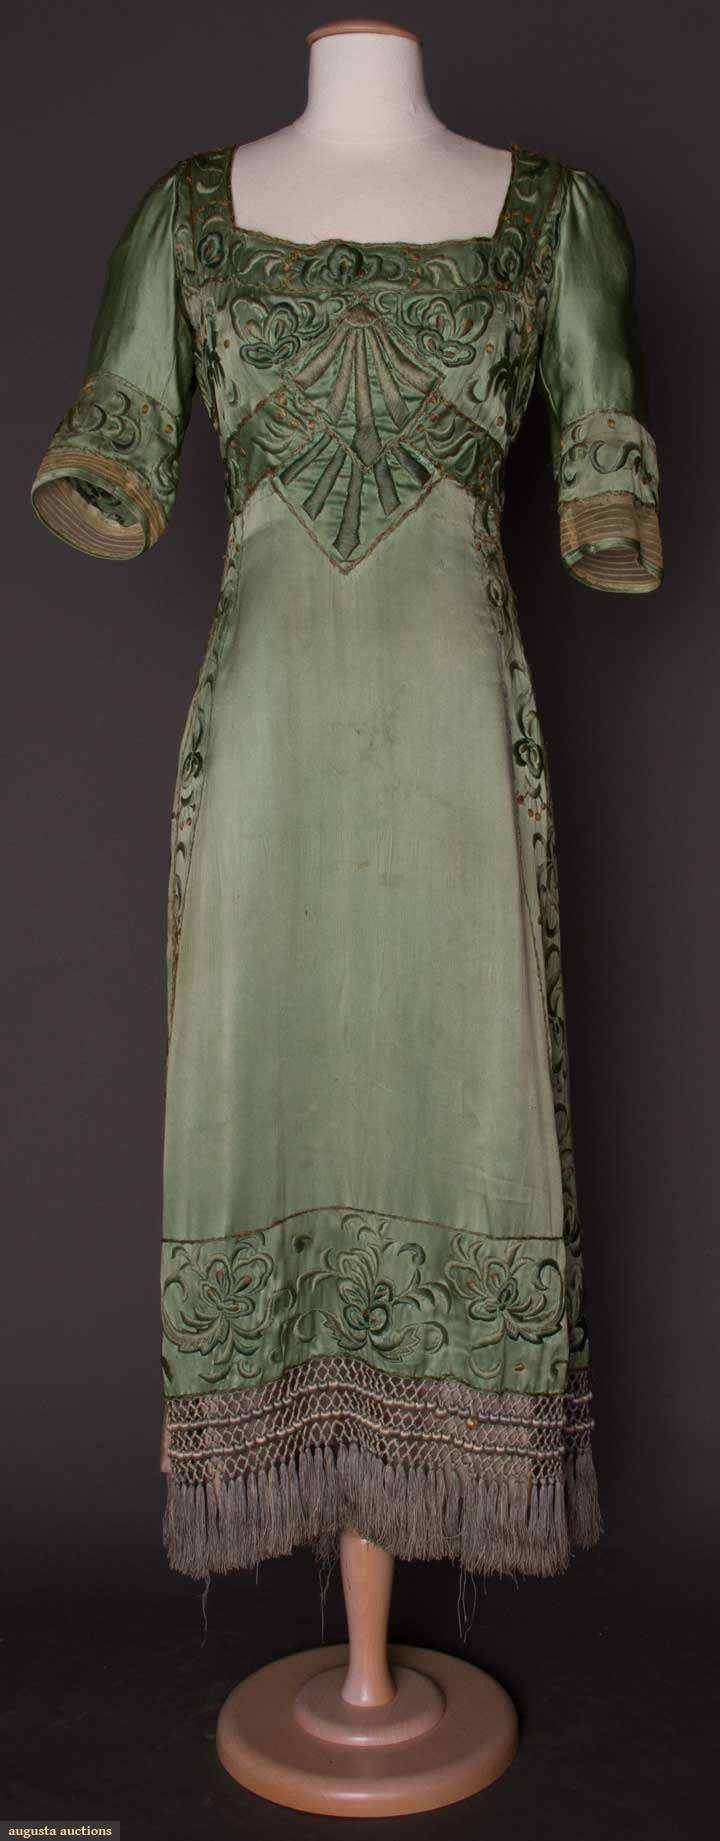 Augusta Auctions, MAY 8th & 9th, 2012, Lot 181: Arts  Crafts Embroidered Gown, C. 1910